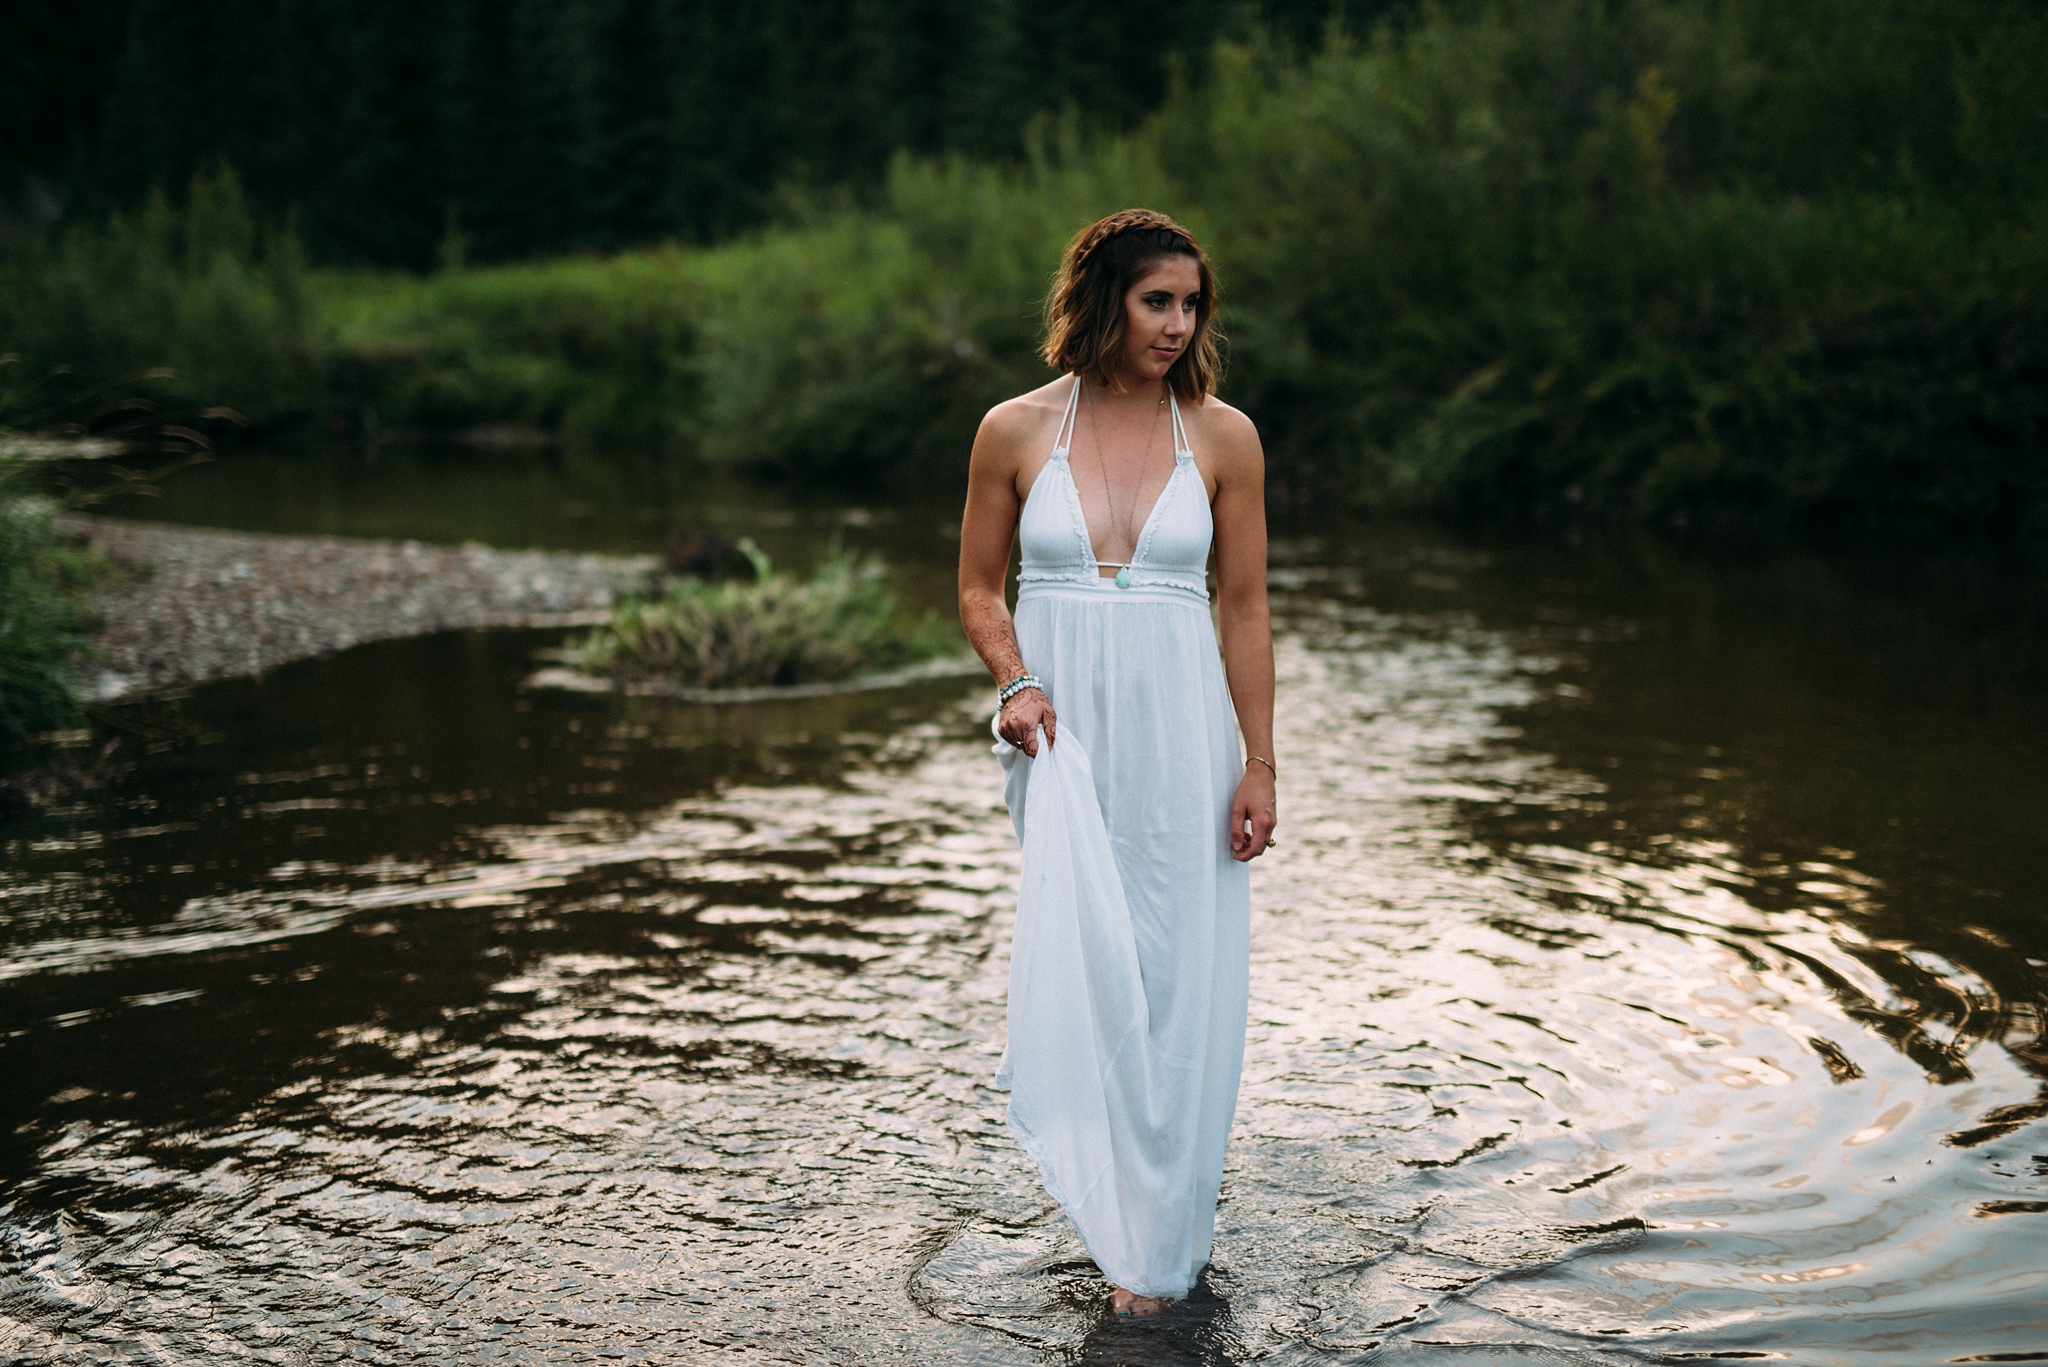 kaihla_tonai_intimate_wedding_elopement_photographer_4493